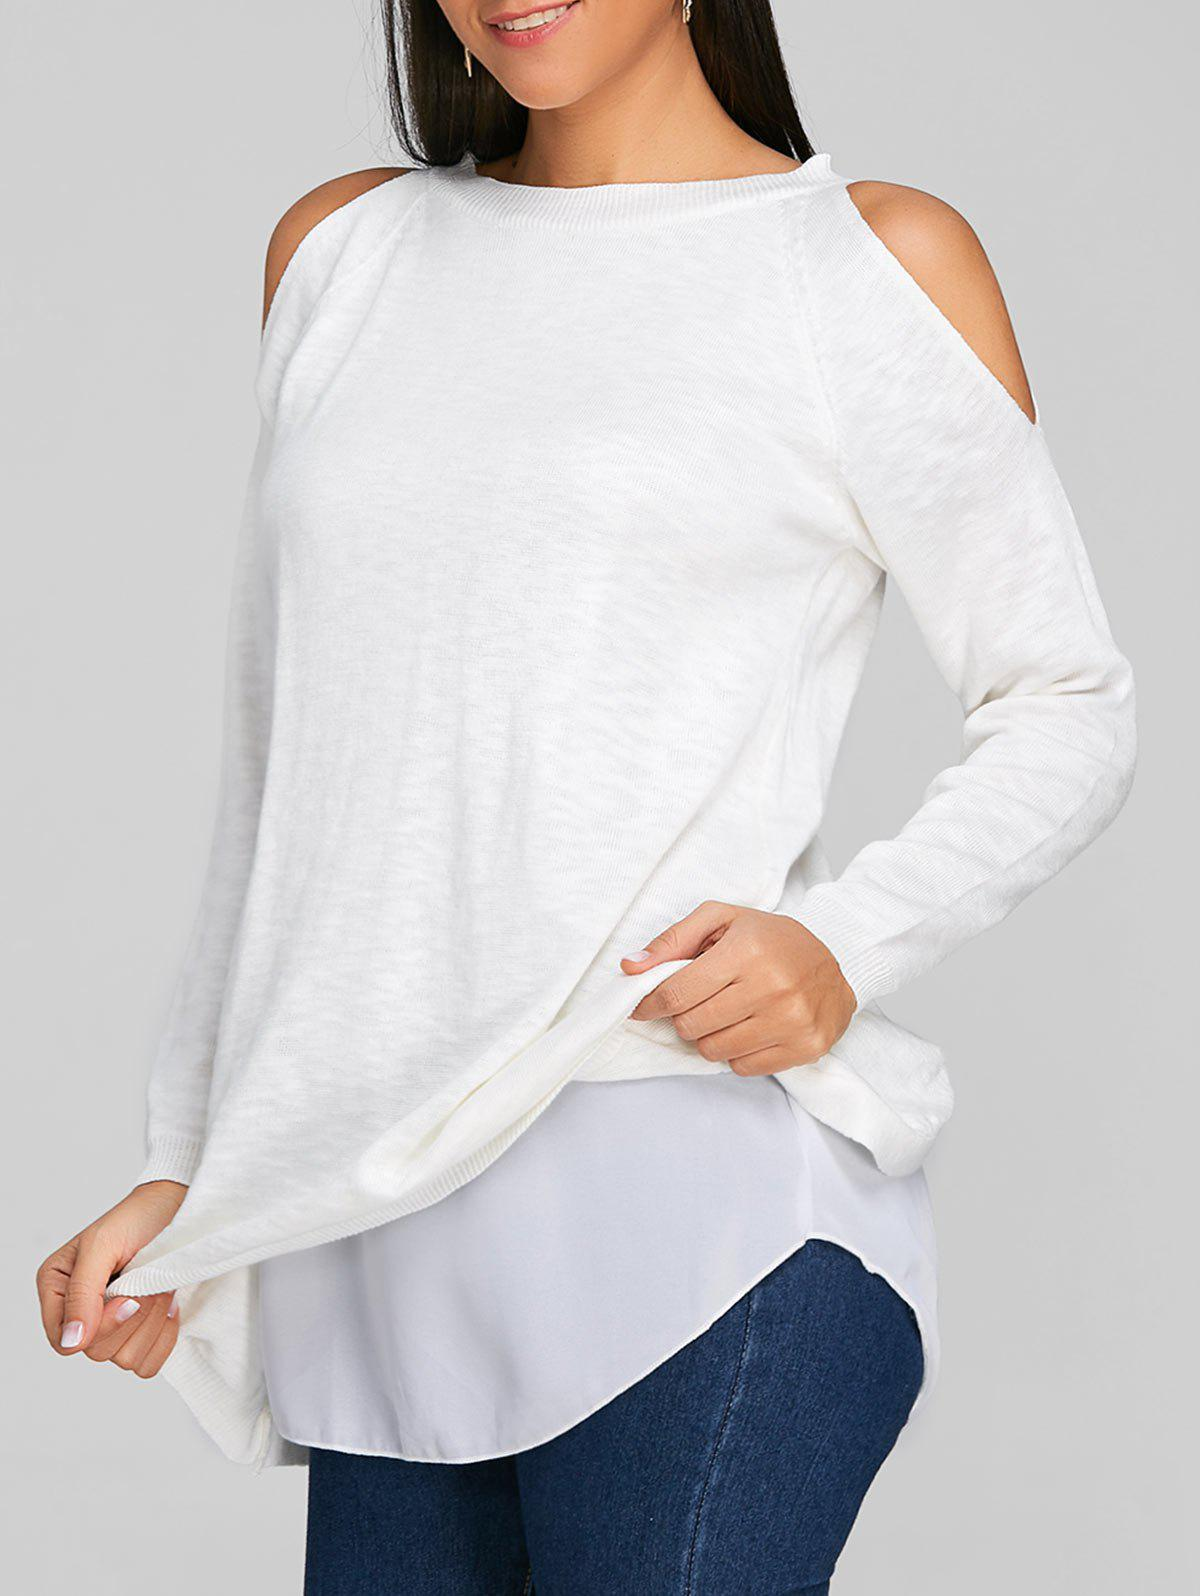 New Cold Shoulder Chiffon Insert Tunic Knitwear